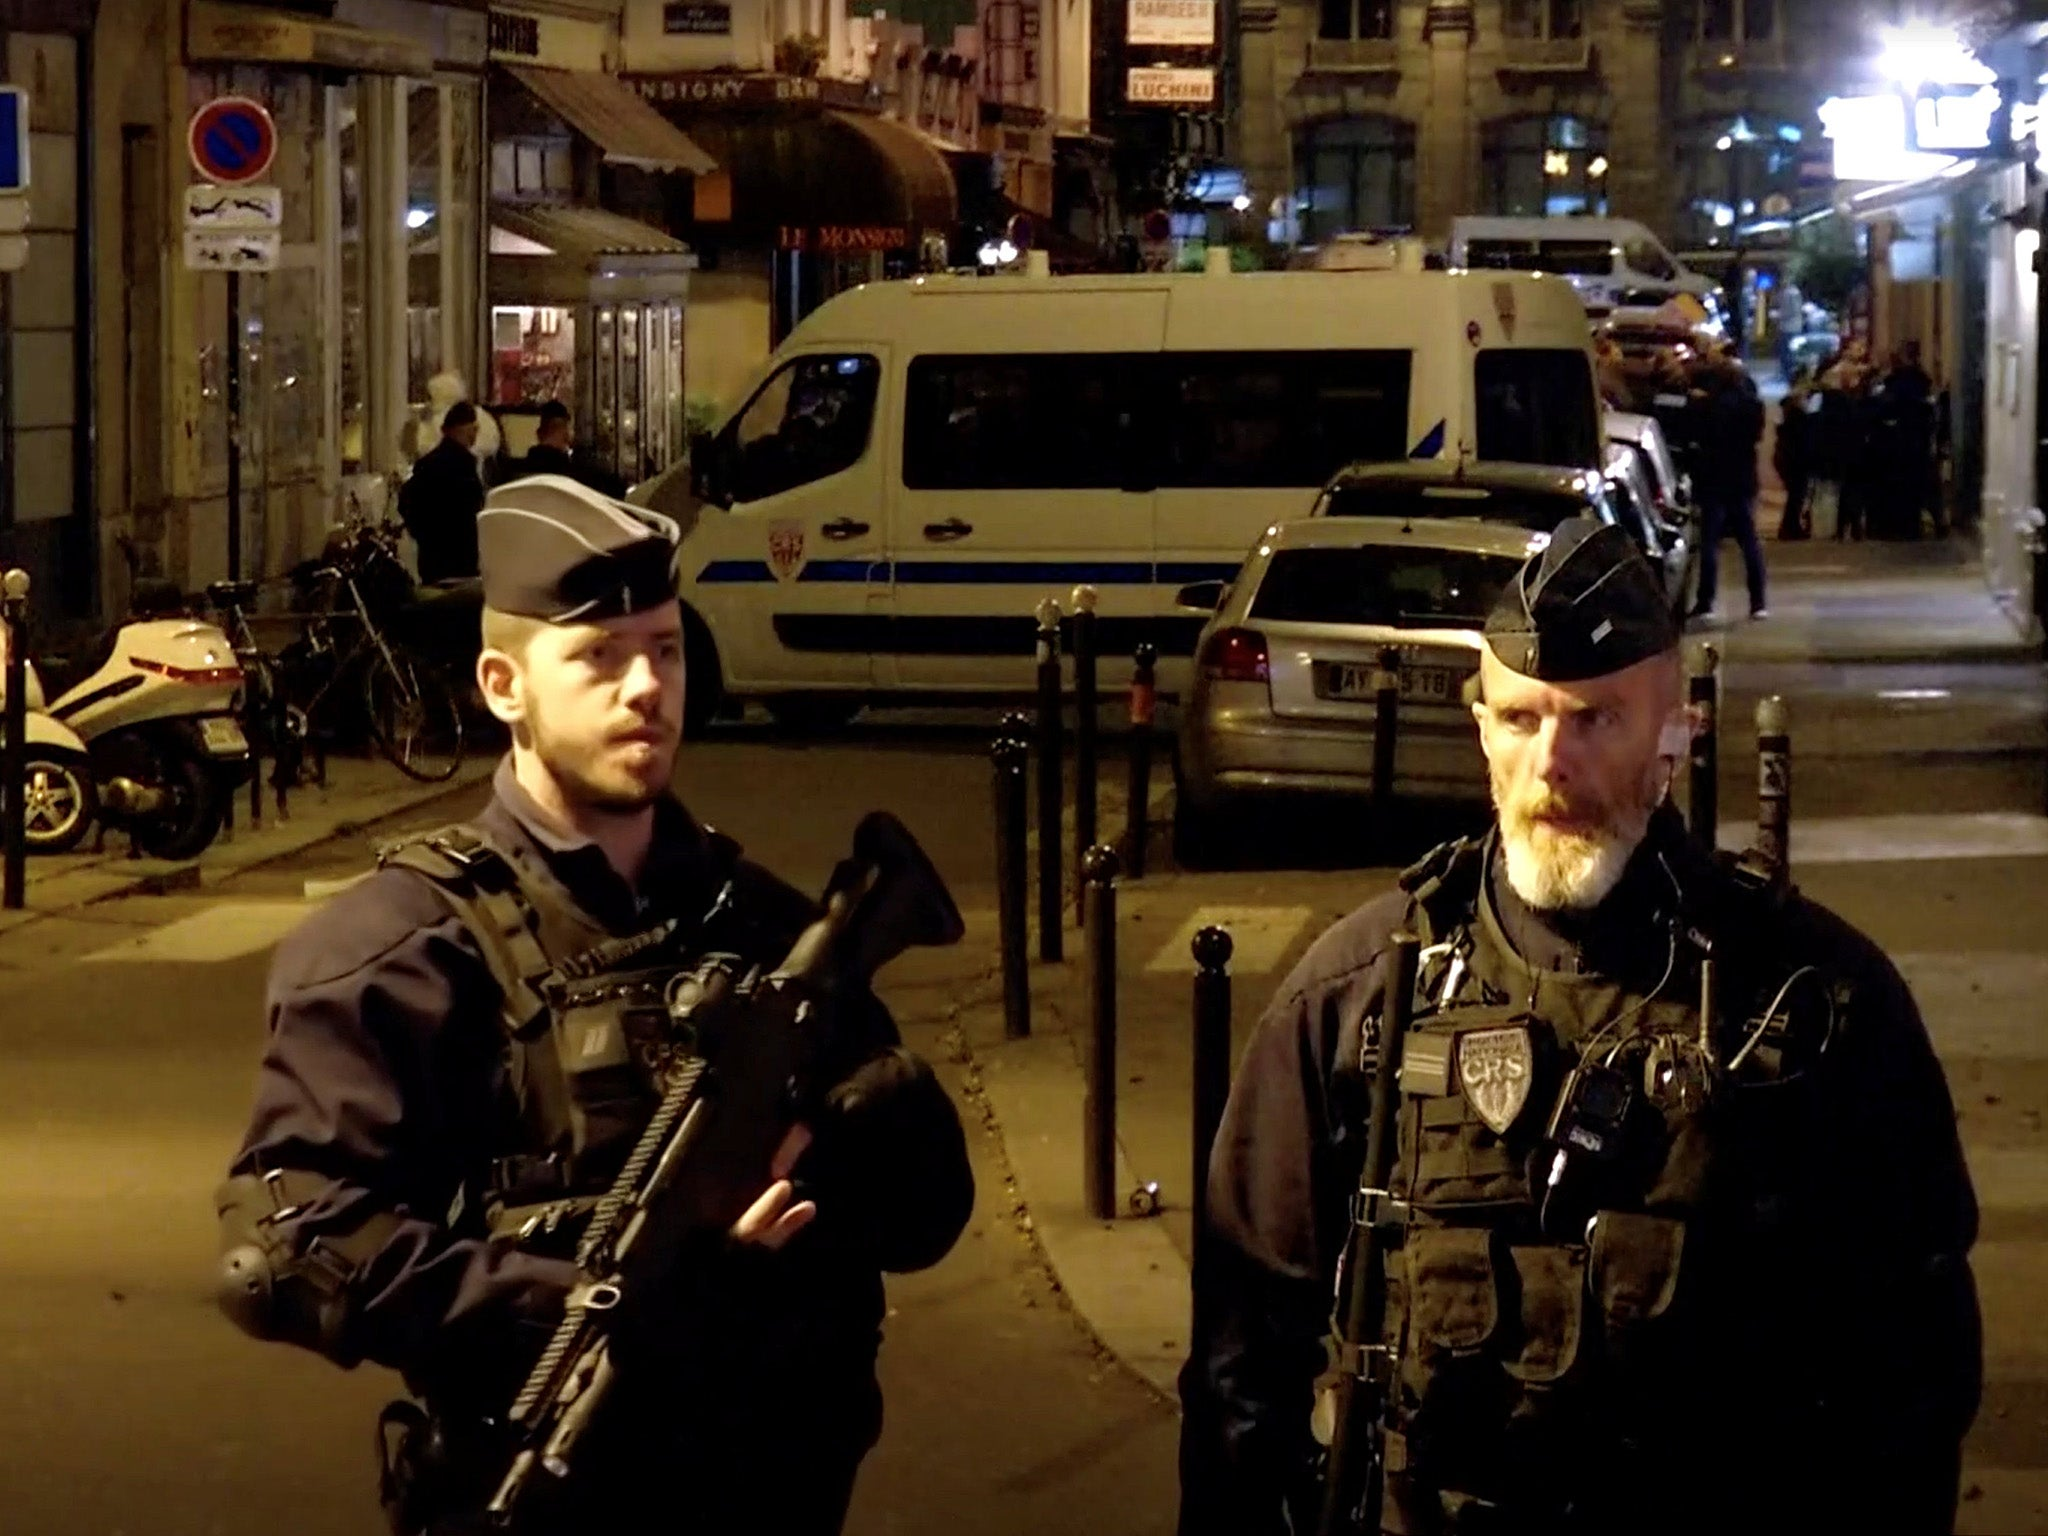 Paris attack: Knifeman who killed one and injured four was French national born in Chechnya